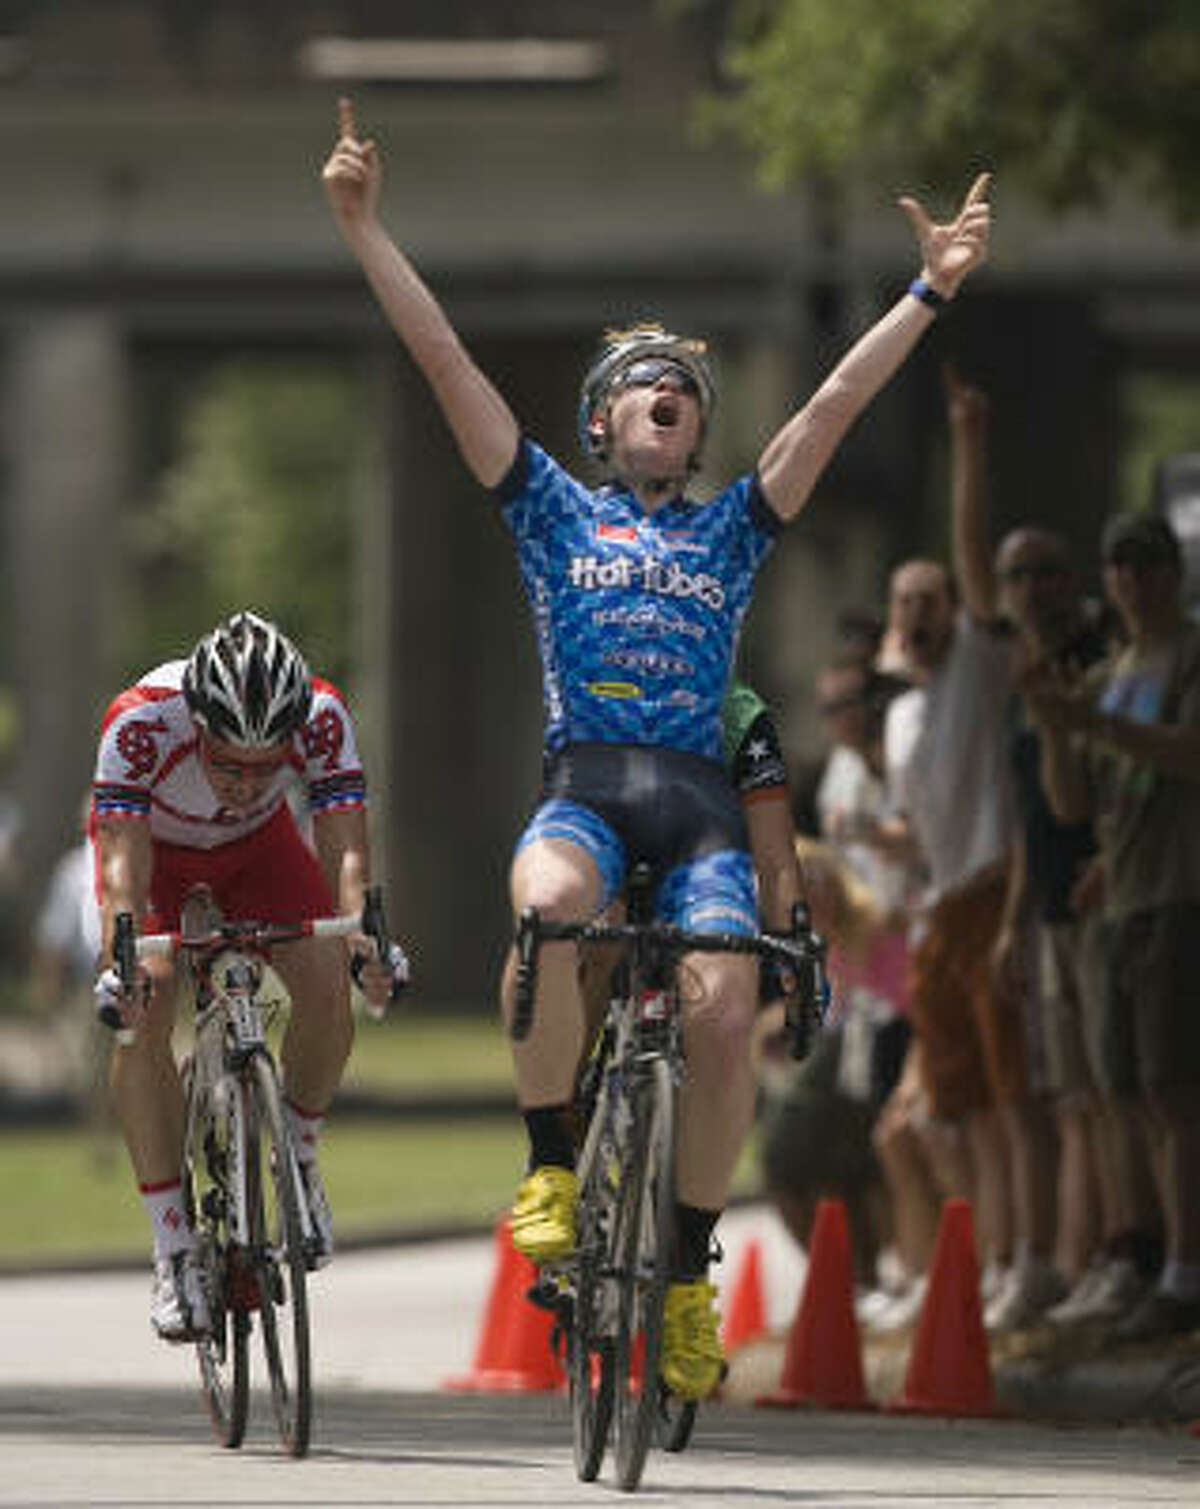 Lawson Craddock is drawing interest from several teams, including Lance Armstrong's.